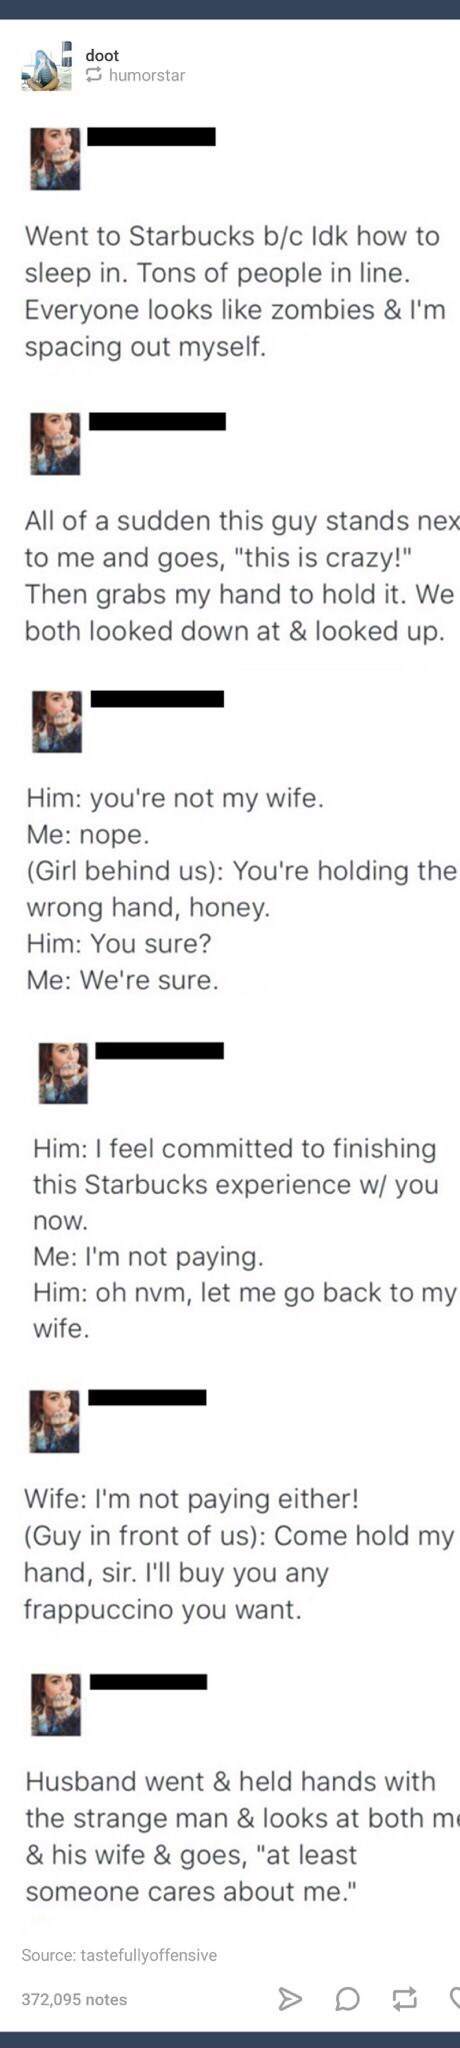 post about a random man in Starbucks holding strangers hands